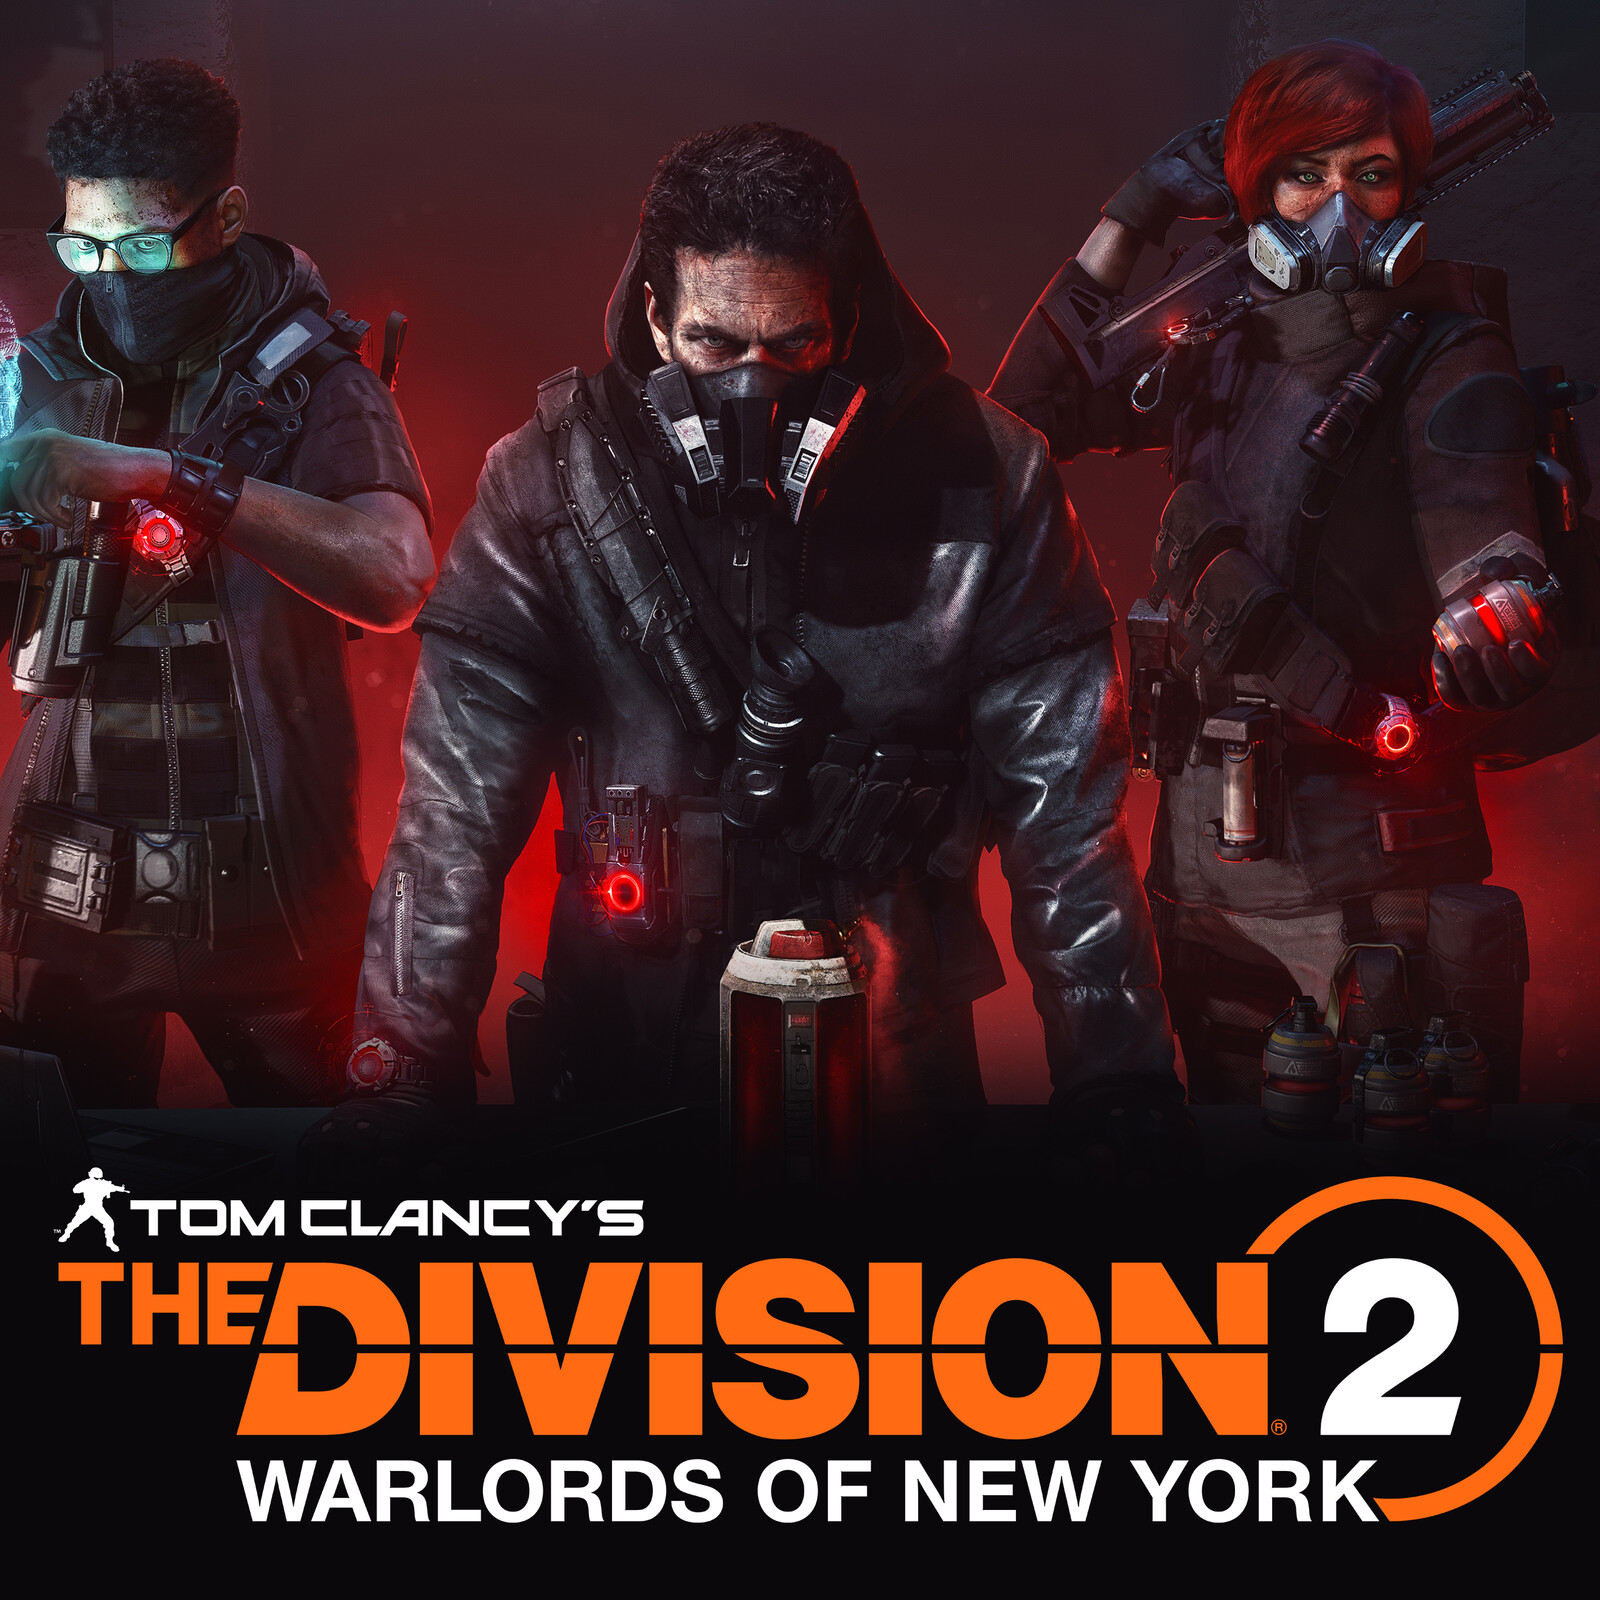 Aaron Keener X Rogue Agents (The Division 2 Warlords of Newyork)